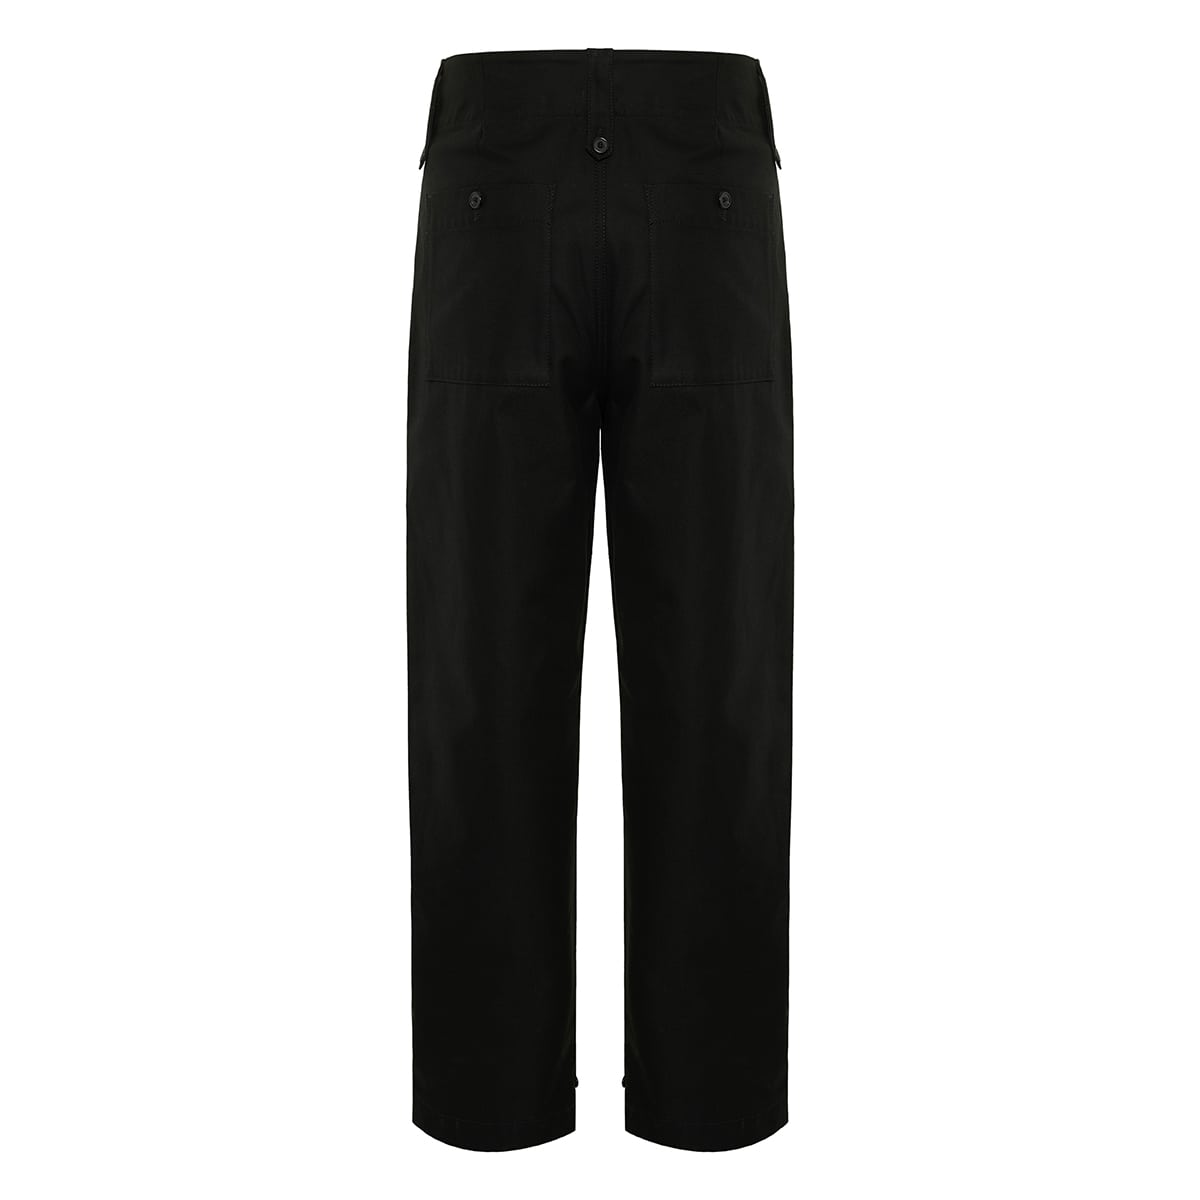 Straight-leg cotton trousers